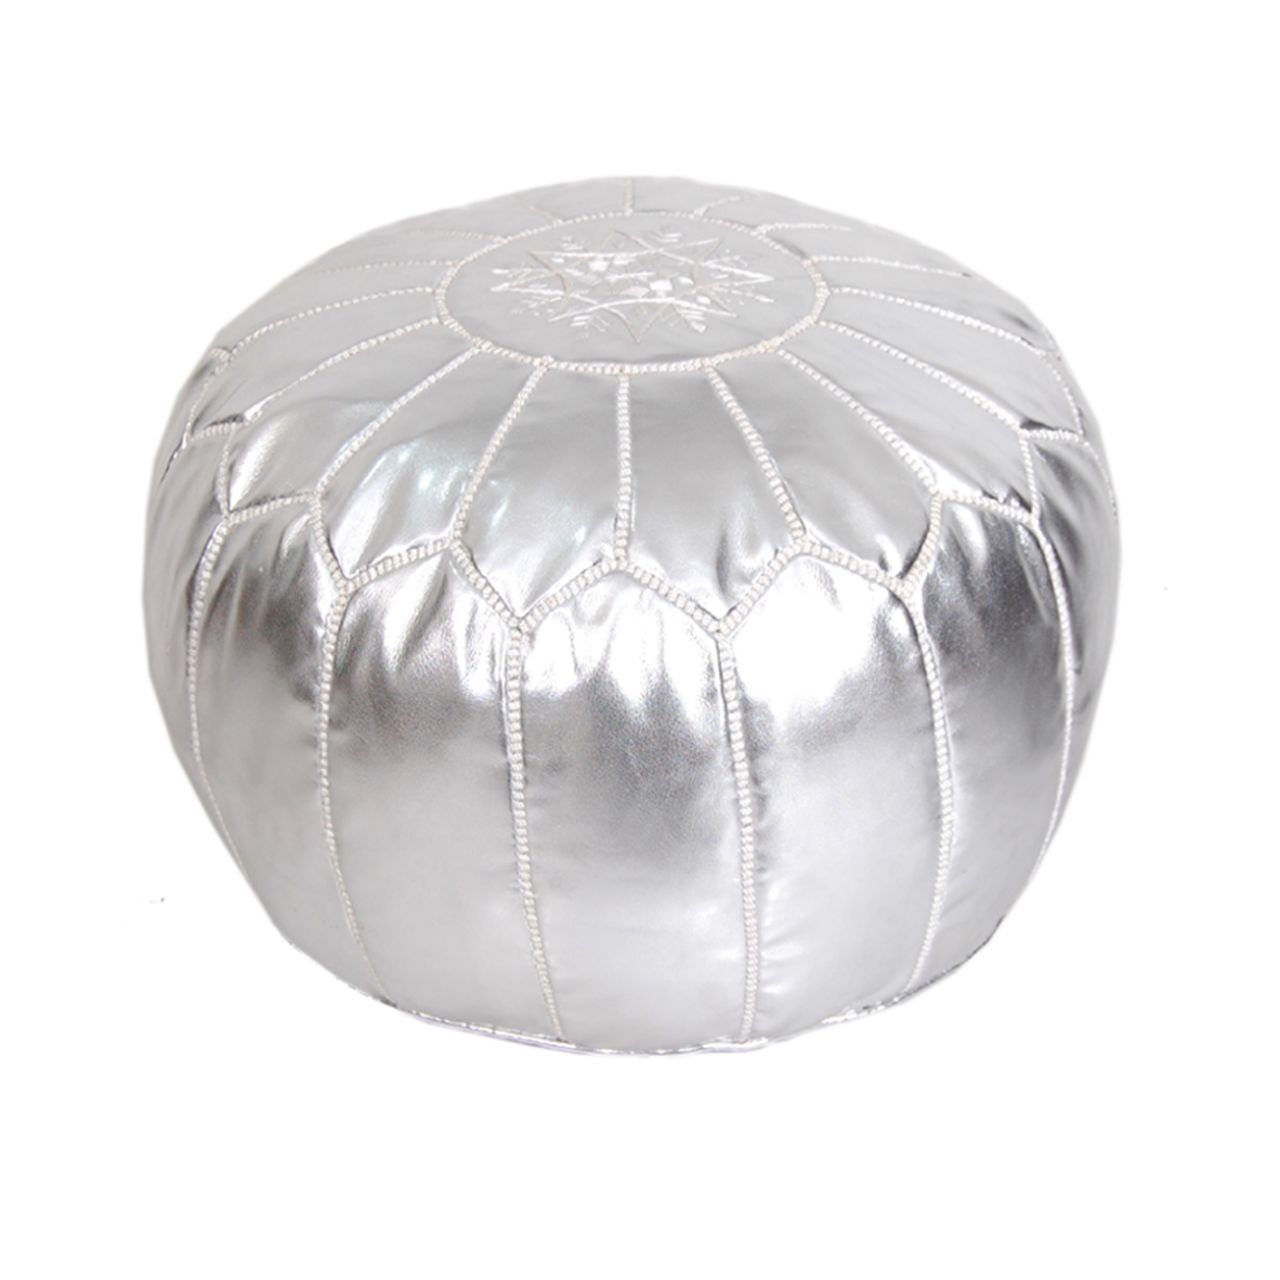 Moroccan Pouf Ottoman Footstool (Faux Leather) Genuine Hand-Stitched Seating | Unstuffed | Living Room, Bedroom, Sitting Area | Silver